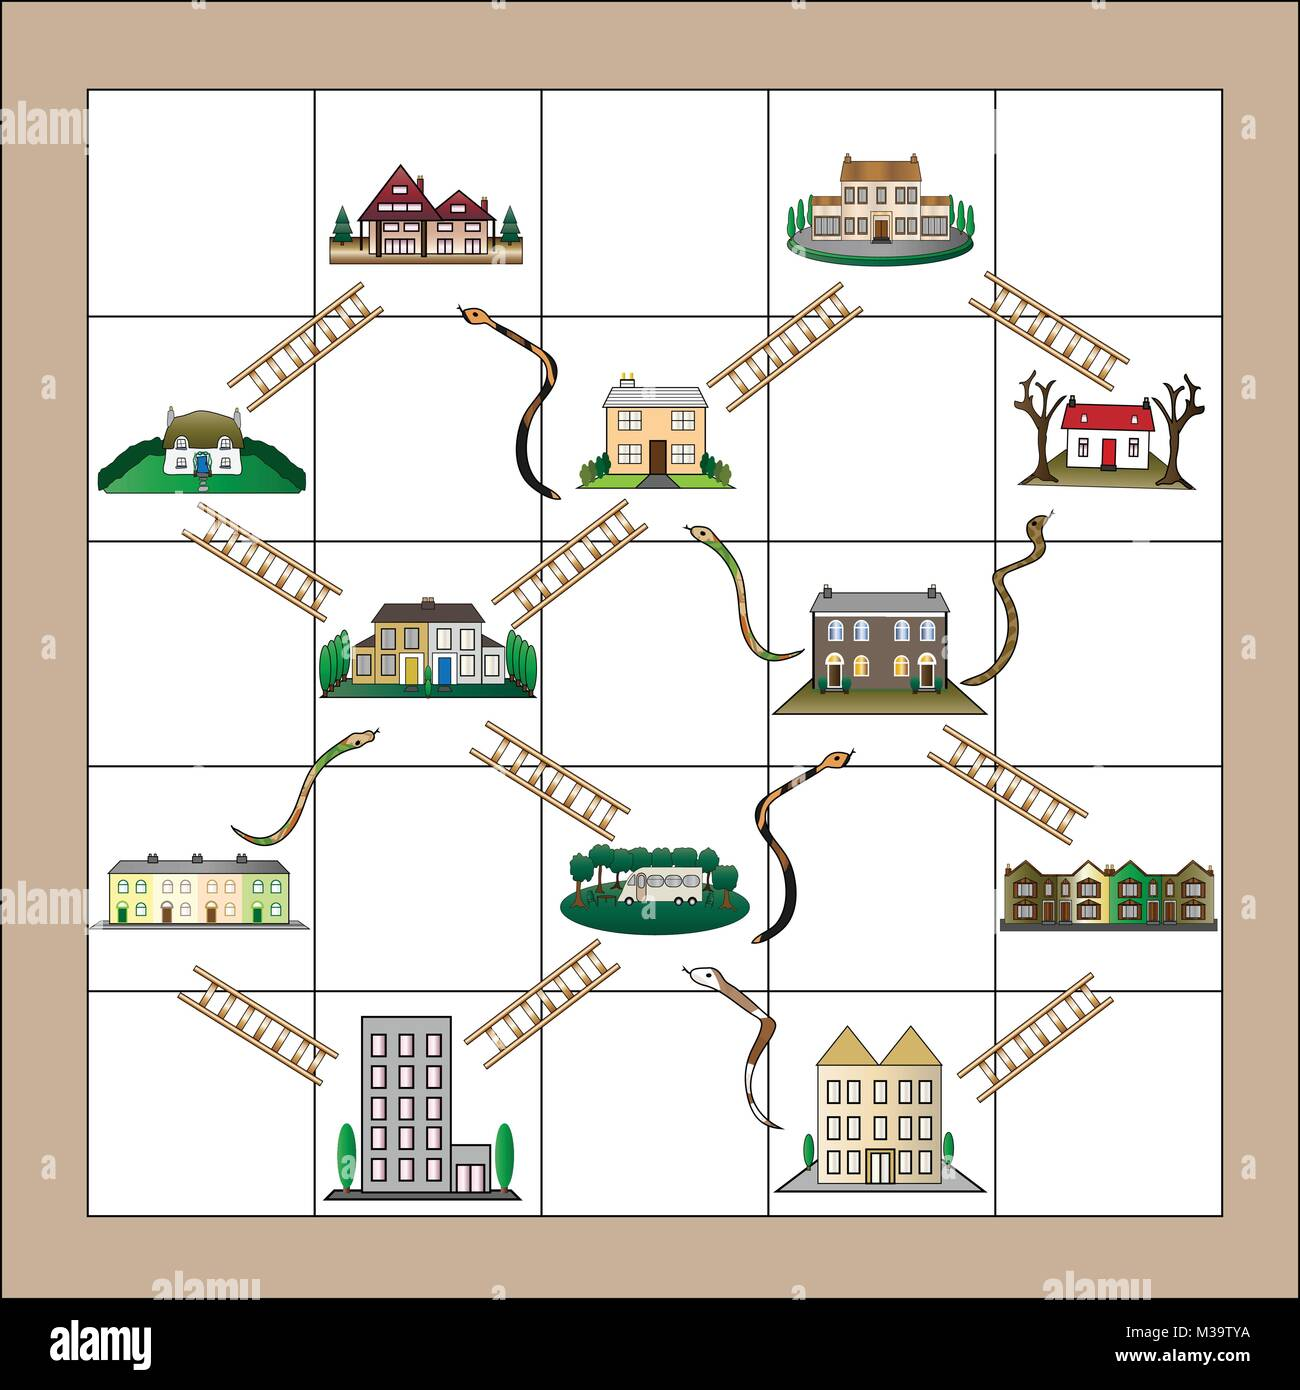 Different level housing enclosed within snakes and ladders board game indicating losses and gains in property market. - Stock Image